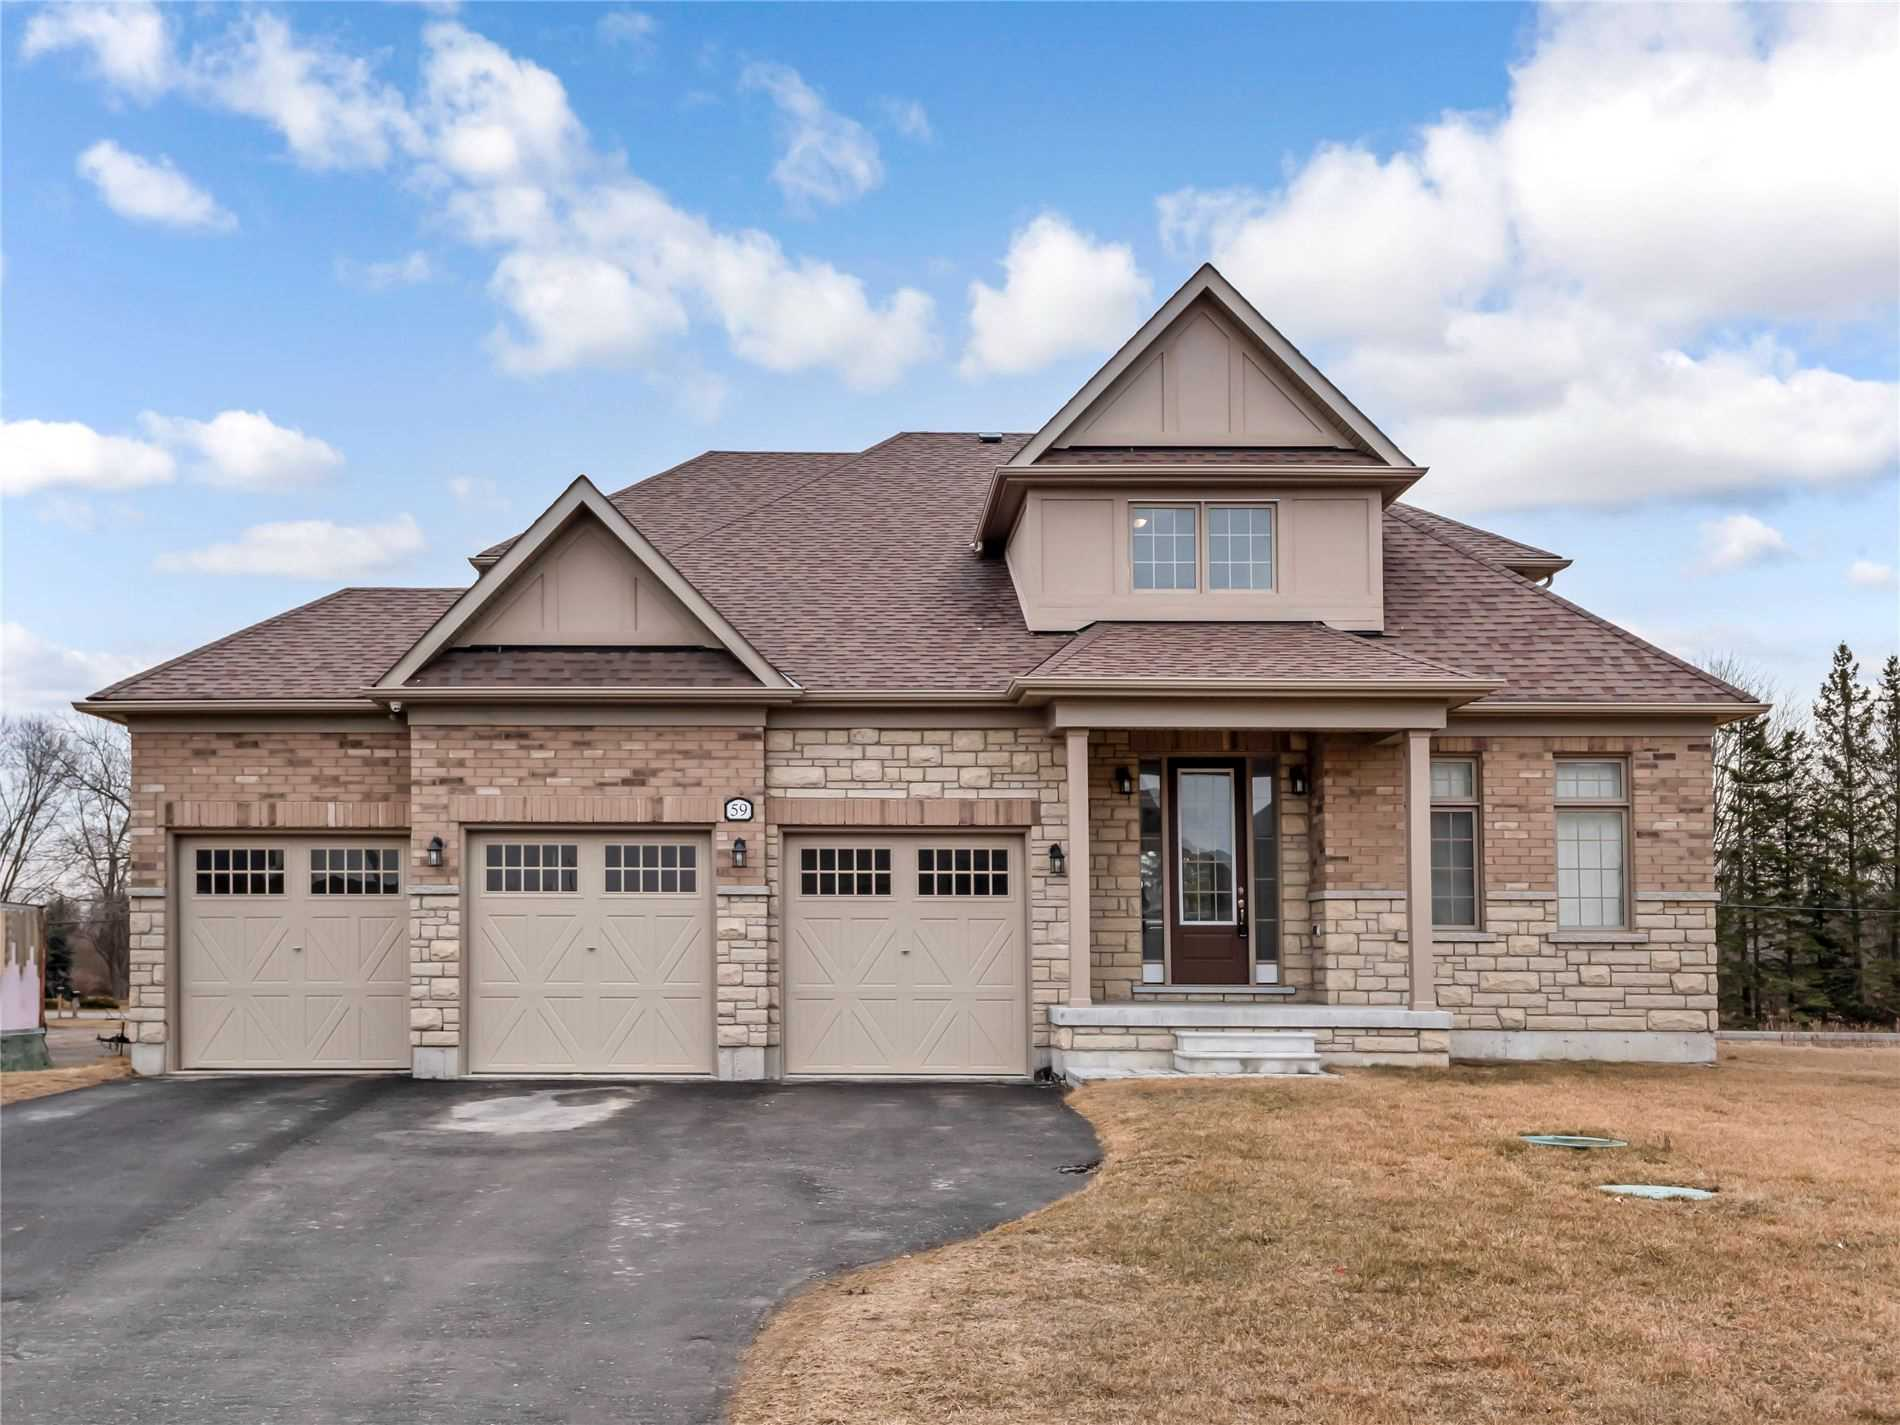 59 Summer Breeze Dr, Quinte West, Ontario K0K1L0, 4 Bedrooms Bedrooms, ,3 BathroomsBathrooms,Detached,For Sale,Summer Breeze,X5159899